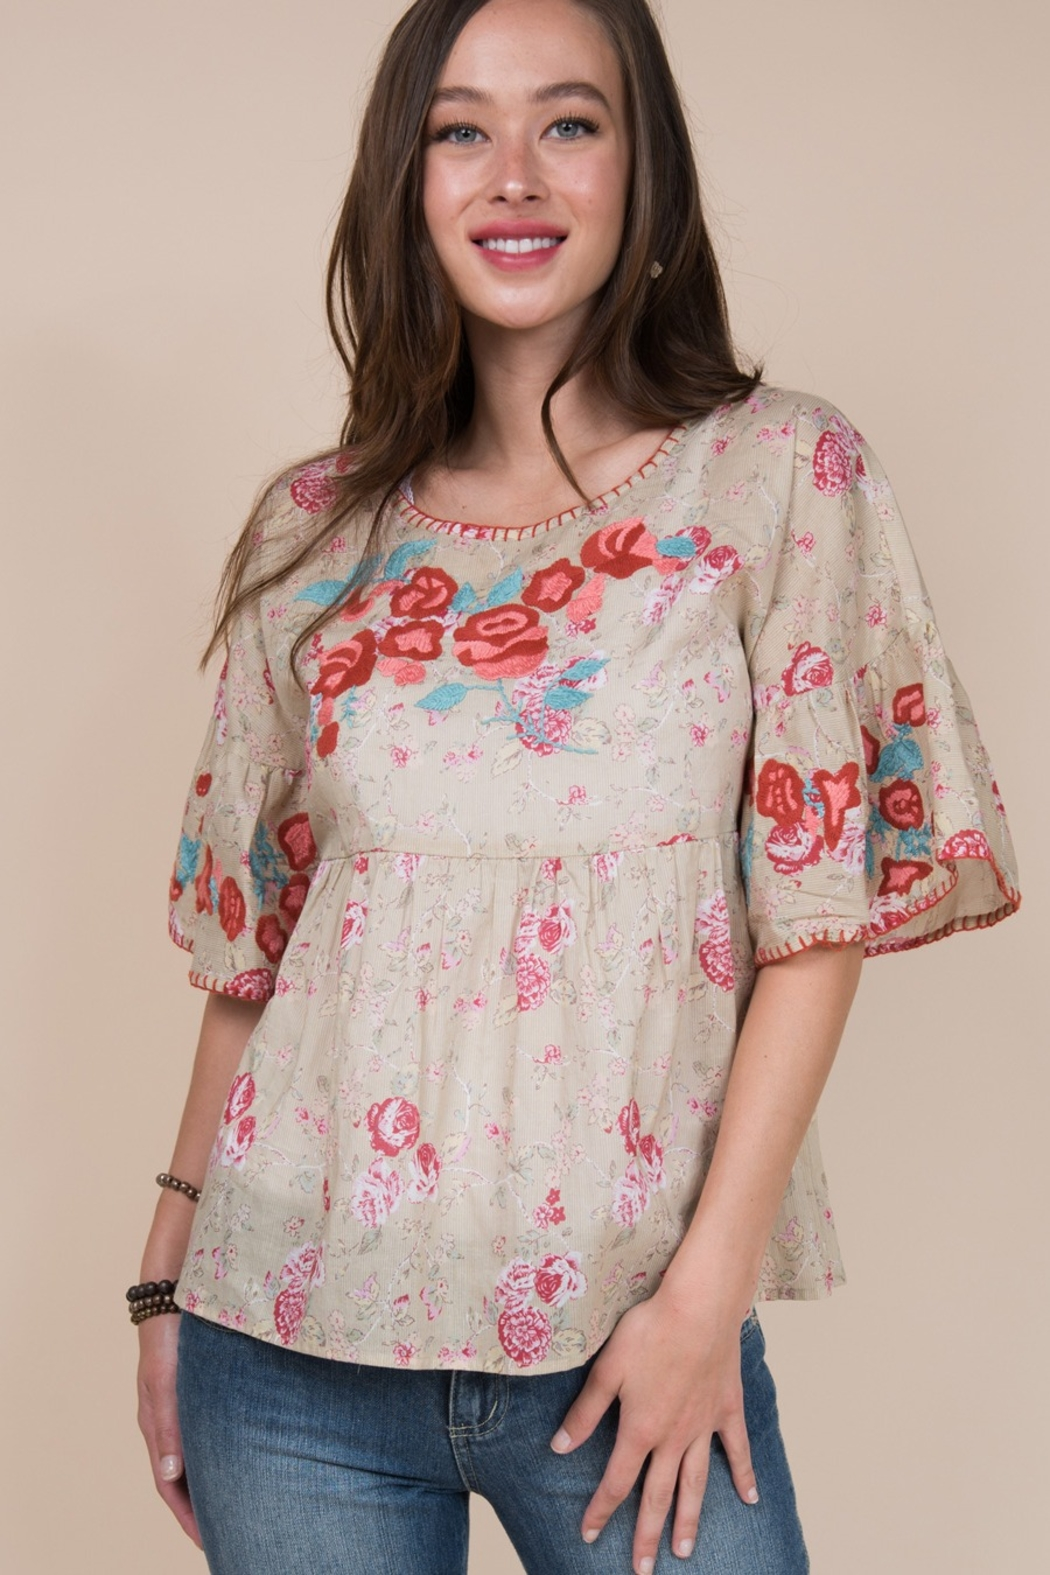 Ivy Jane  Ruffle Sleeve Top with Embroidered Roses - Main Image